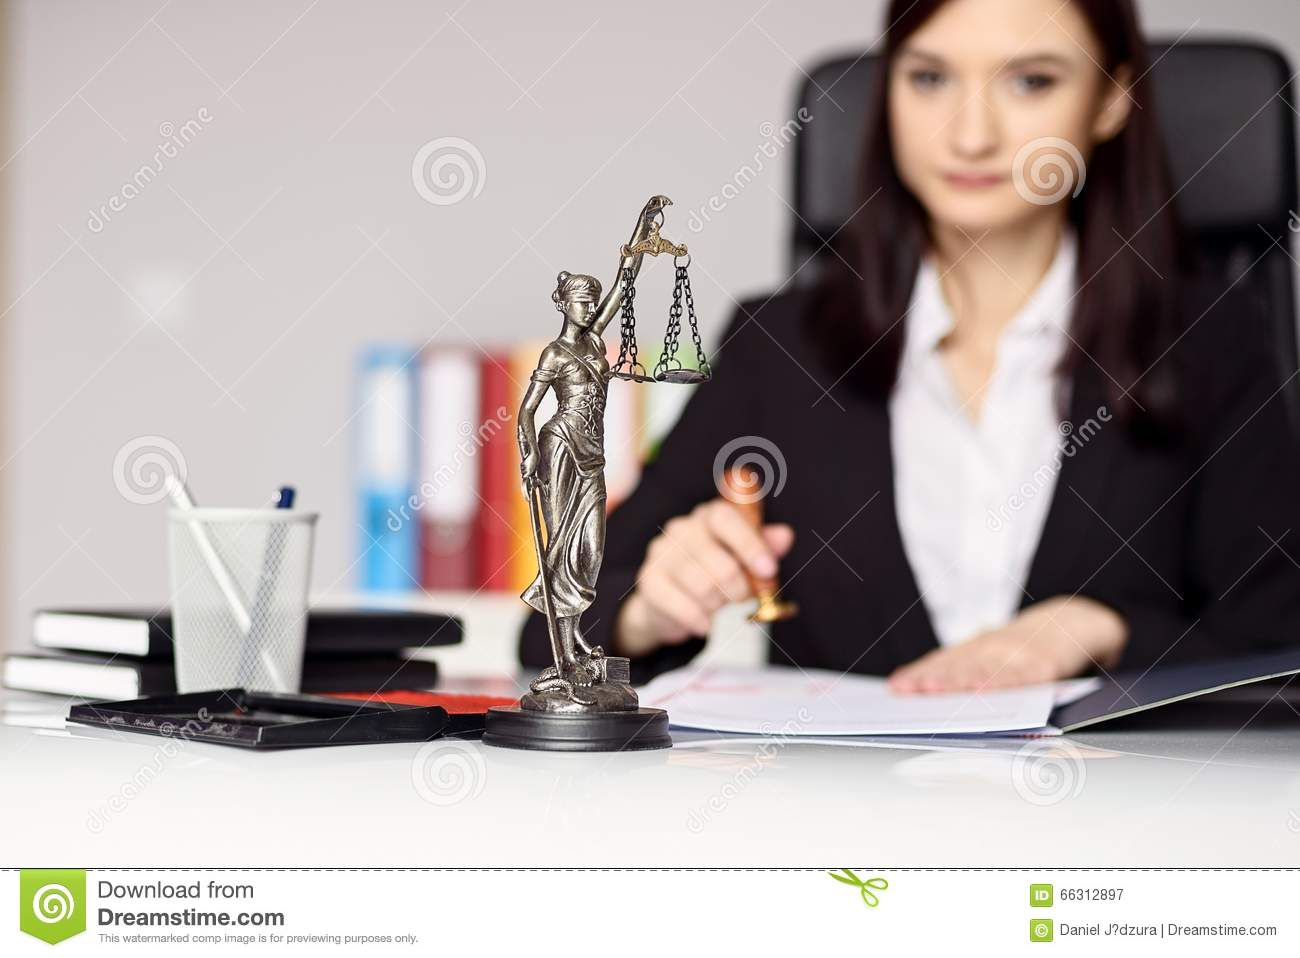 How to Easily and Affordably Start a Notary Business